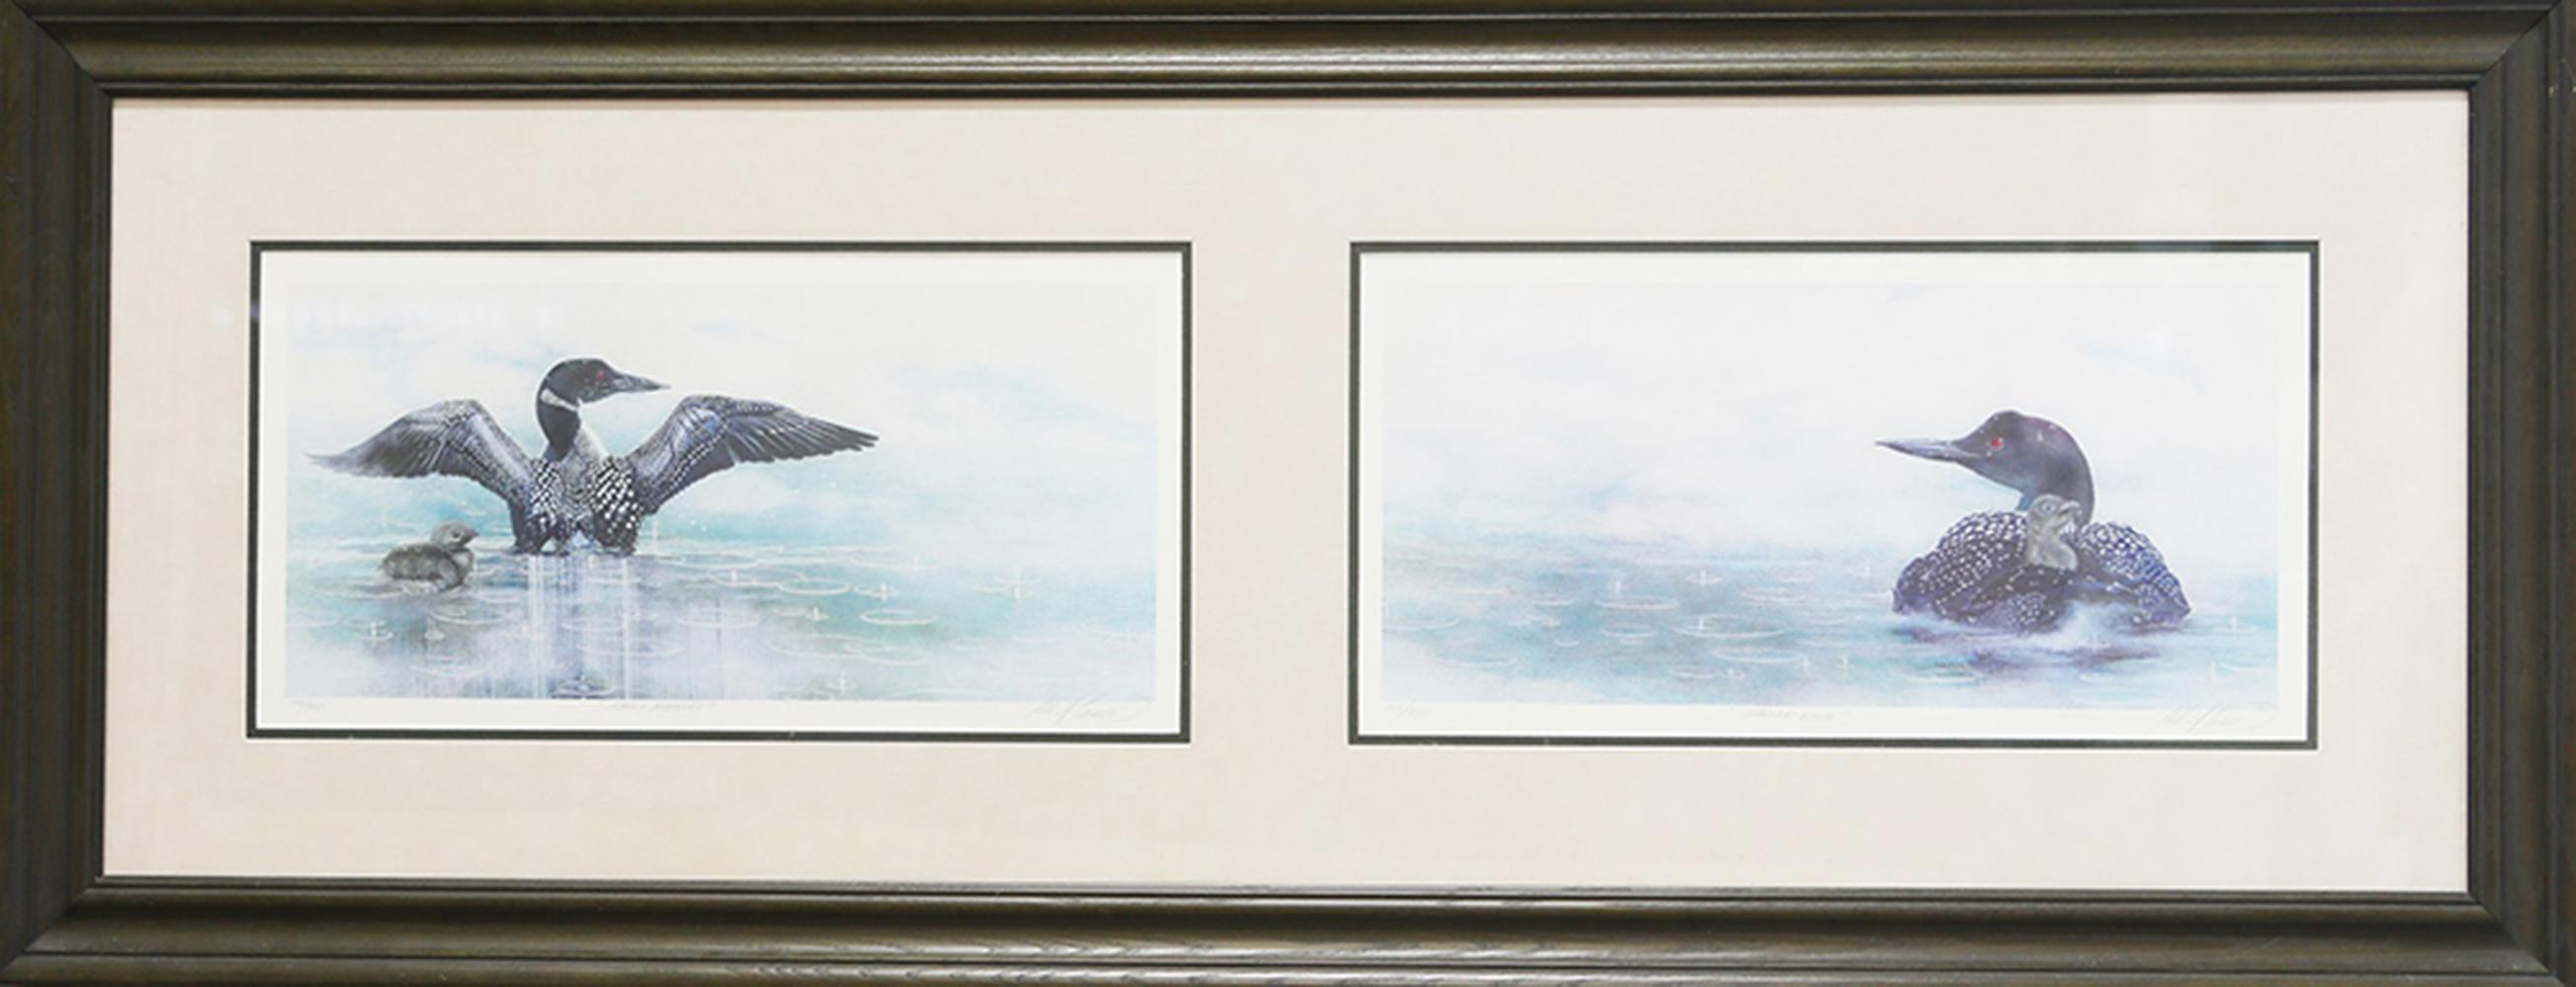 "Albert Casson's ""Early Morning - Summer Rain"" Limited Edition Framed Print"